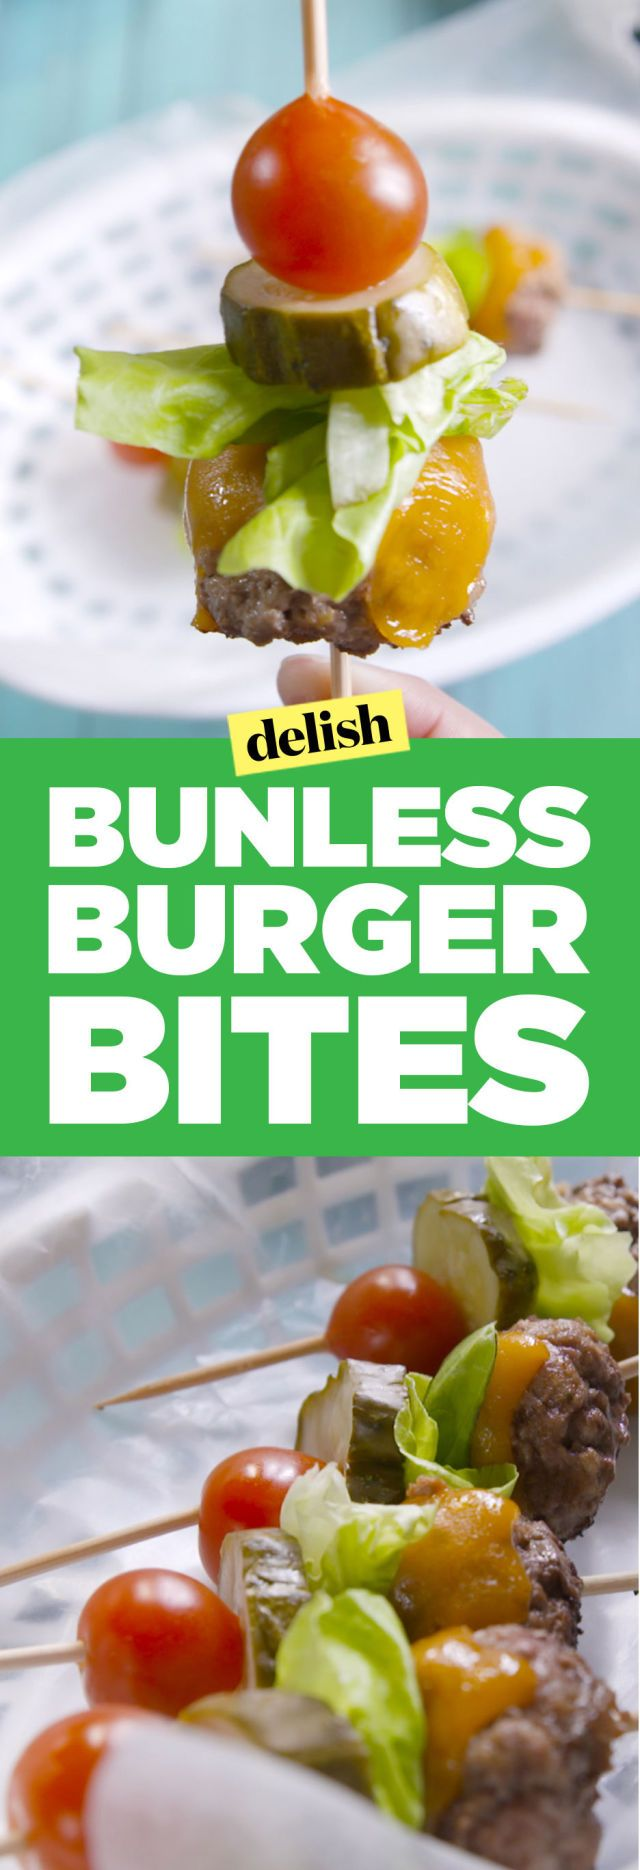 Bunless Burger Bites Are the Addictive (and Adorable) Appetizer Your Party Needs - Delish.com